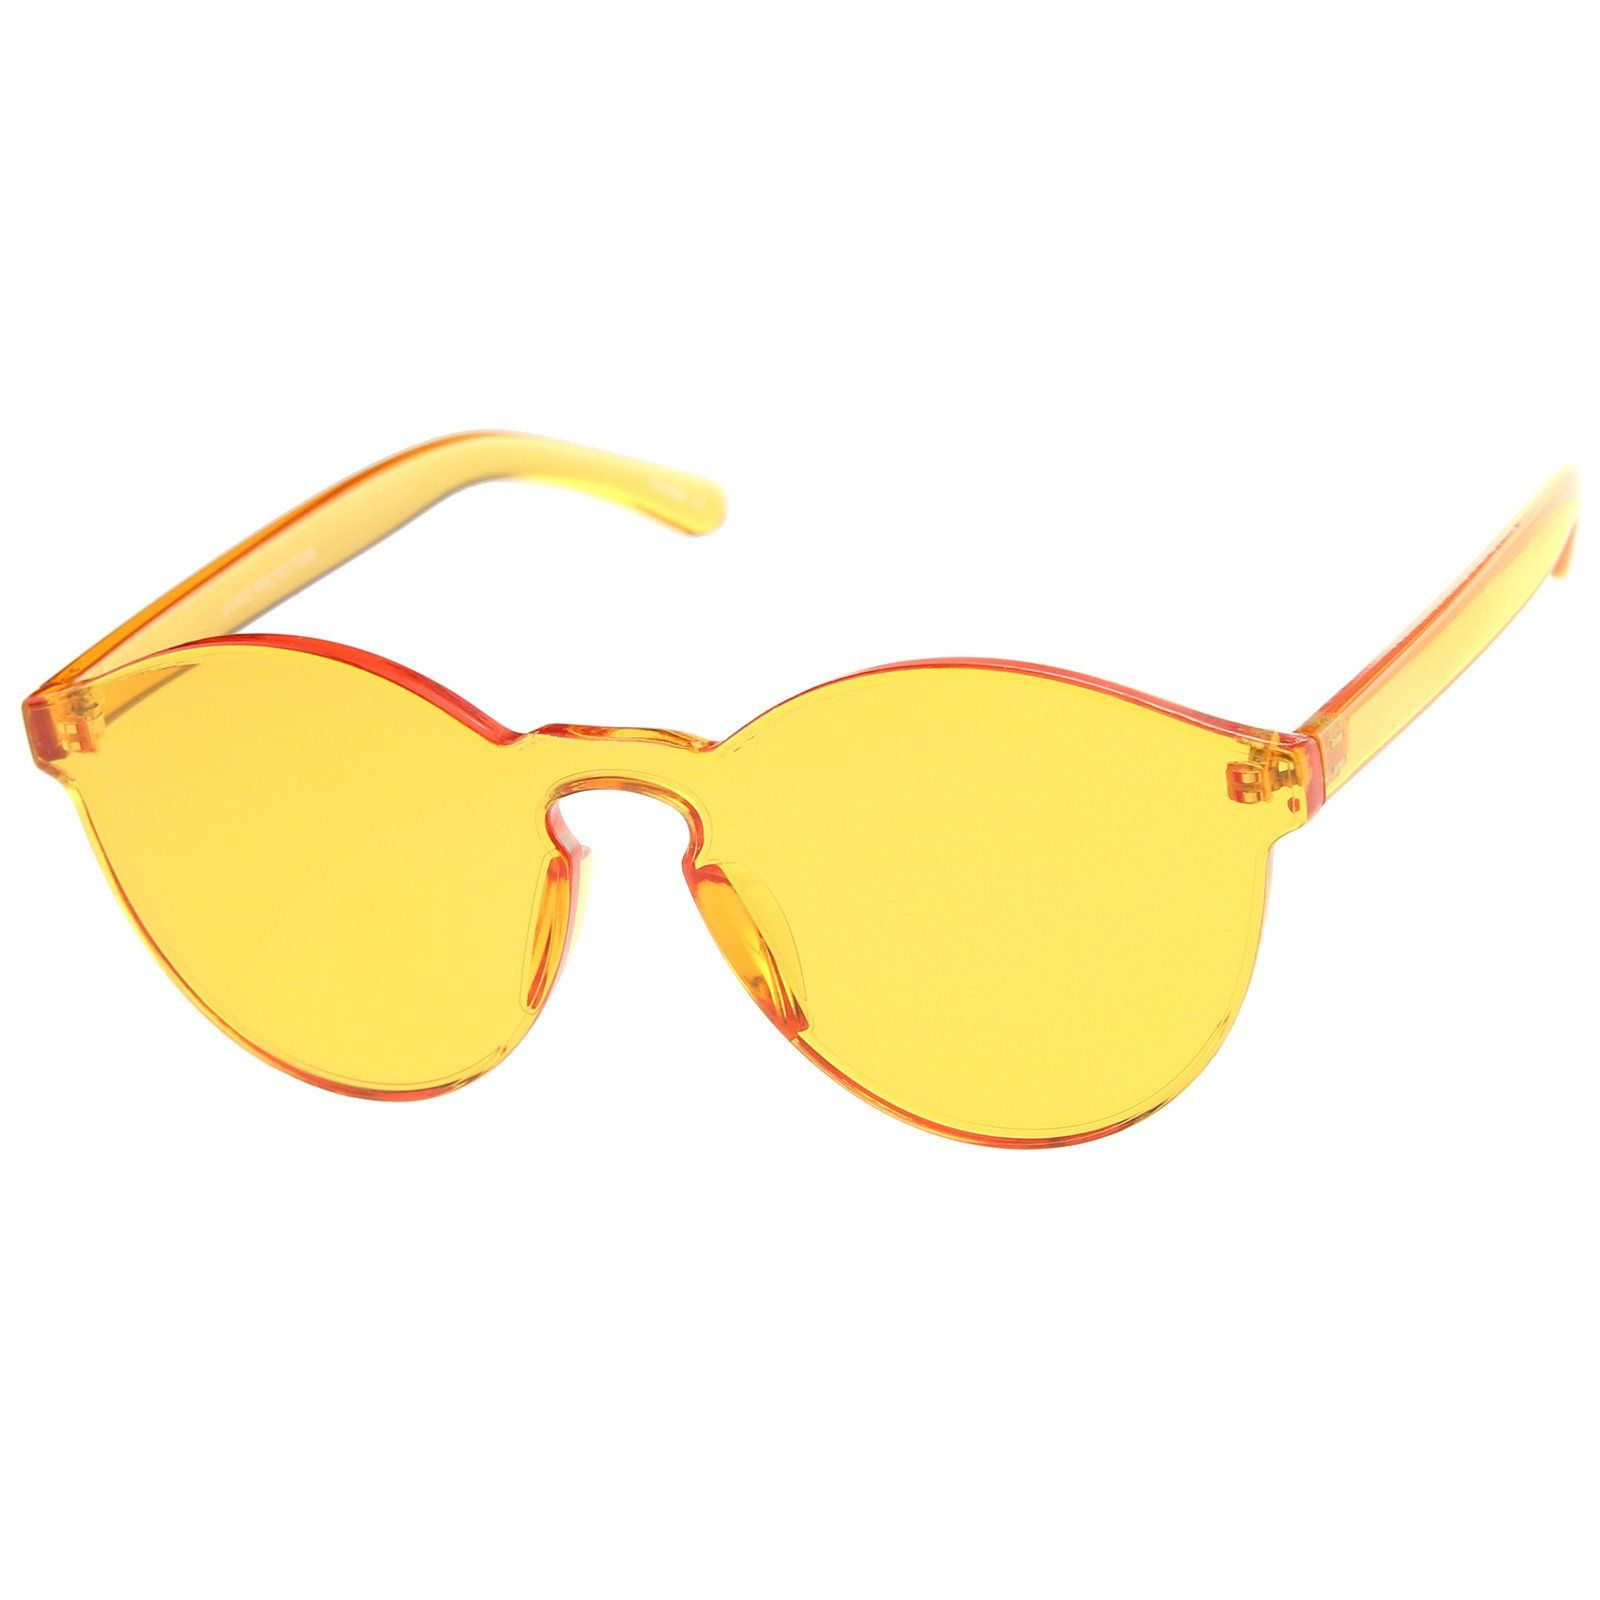 b921b793fe5 One Piece PC Lens Rimless Ultra-Bold Colorful Mono Block Sunglasses ...